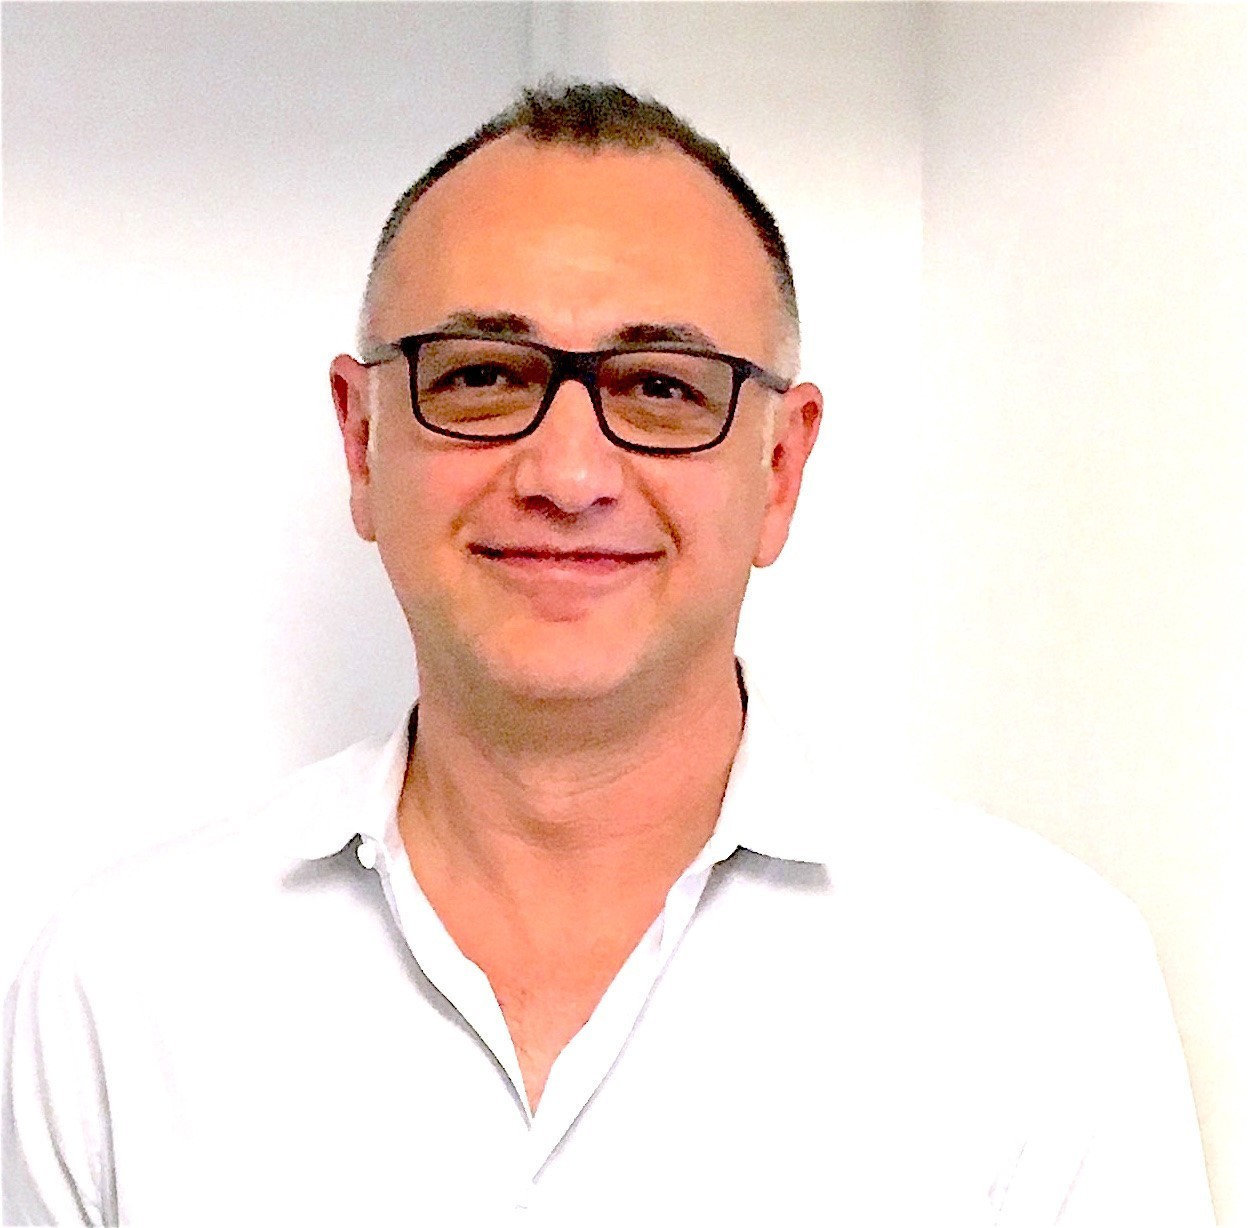 Embodied co-founder Paolo Pirjanian